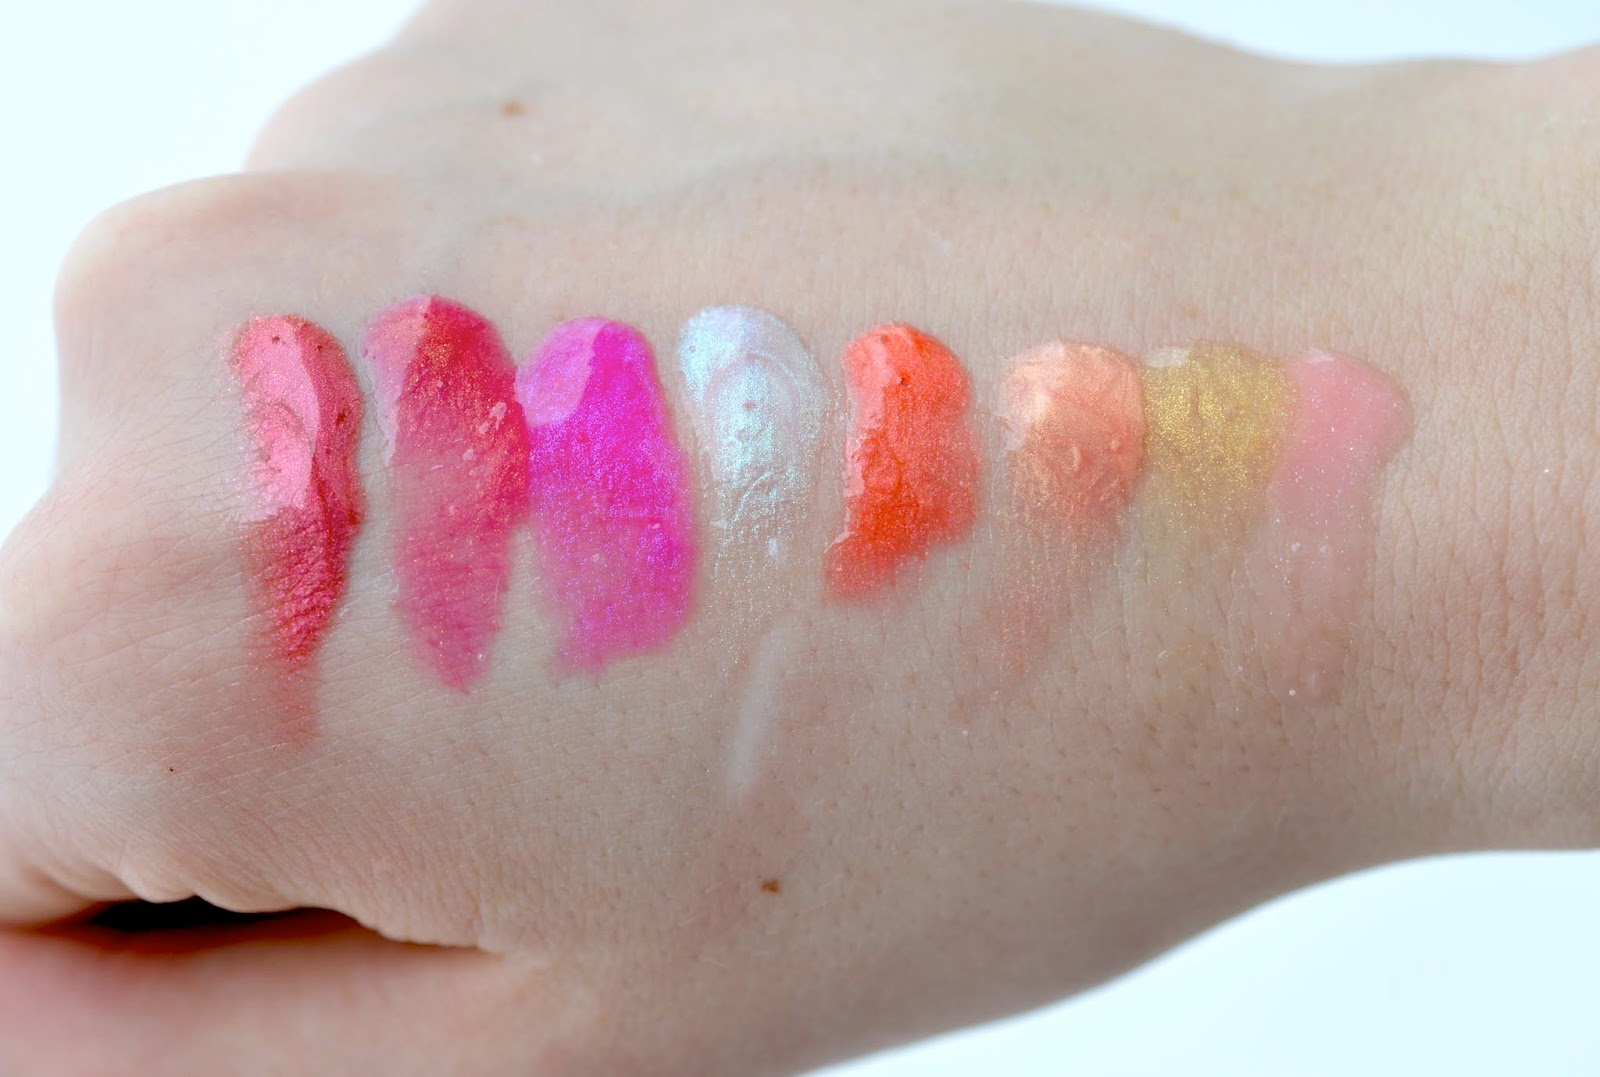 AVON Crave Lip Gloss Swatches